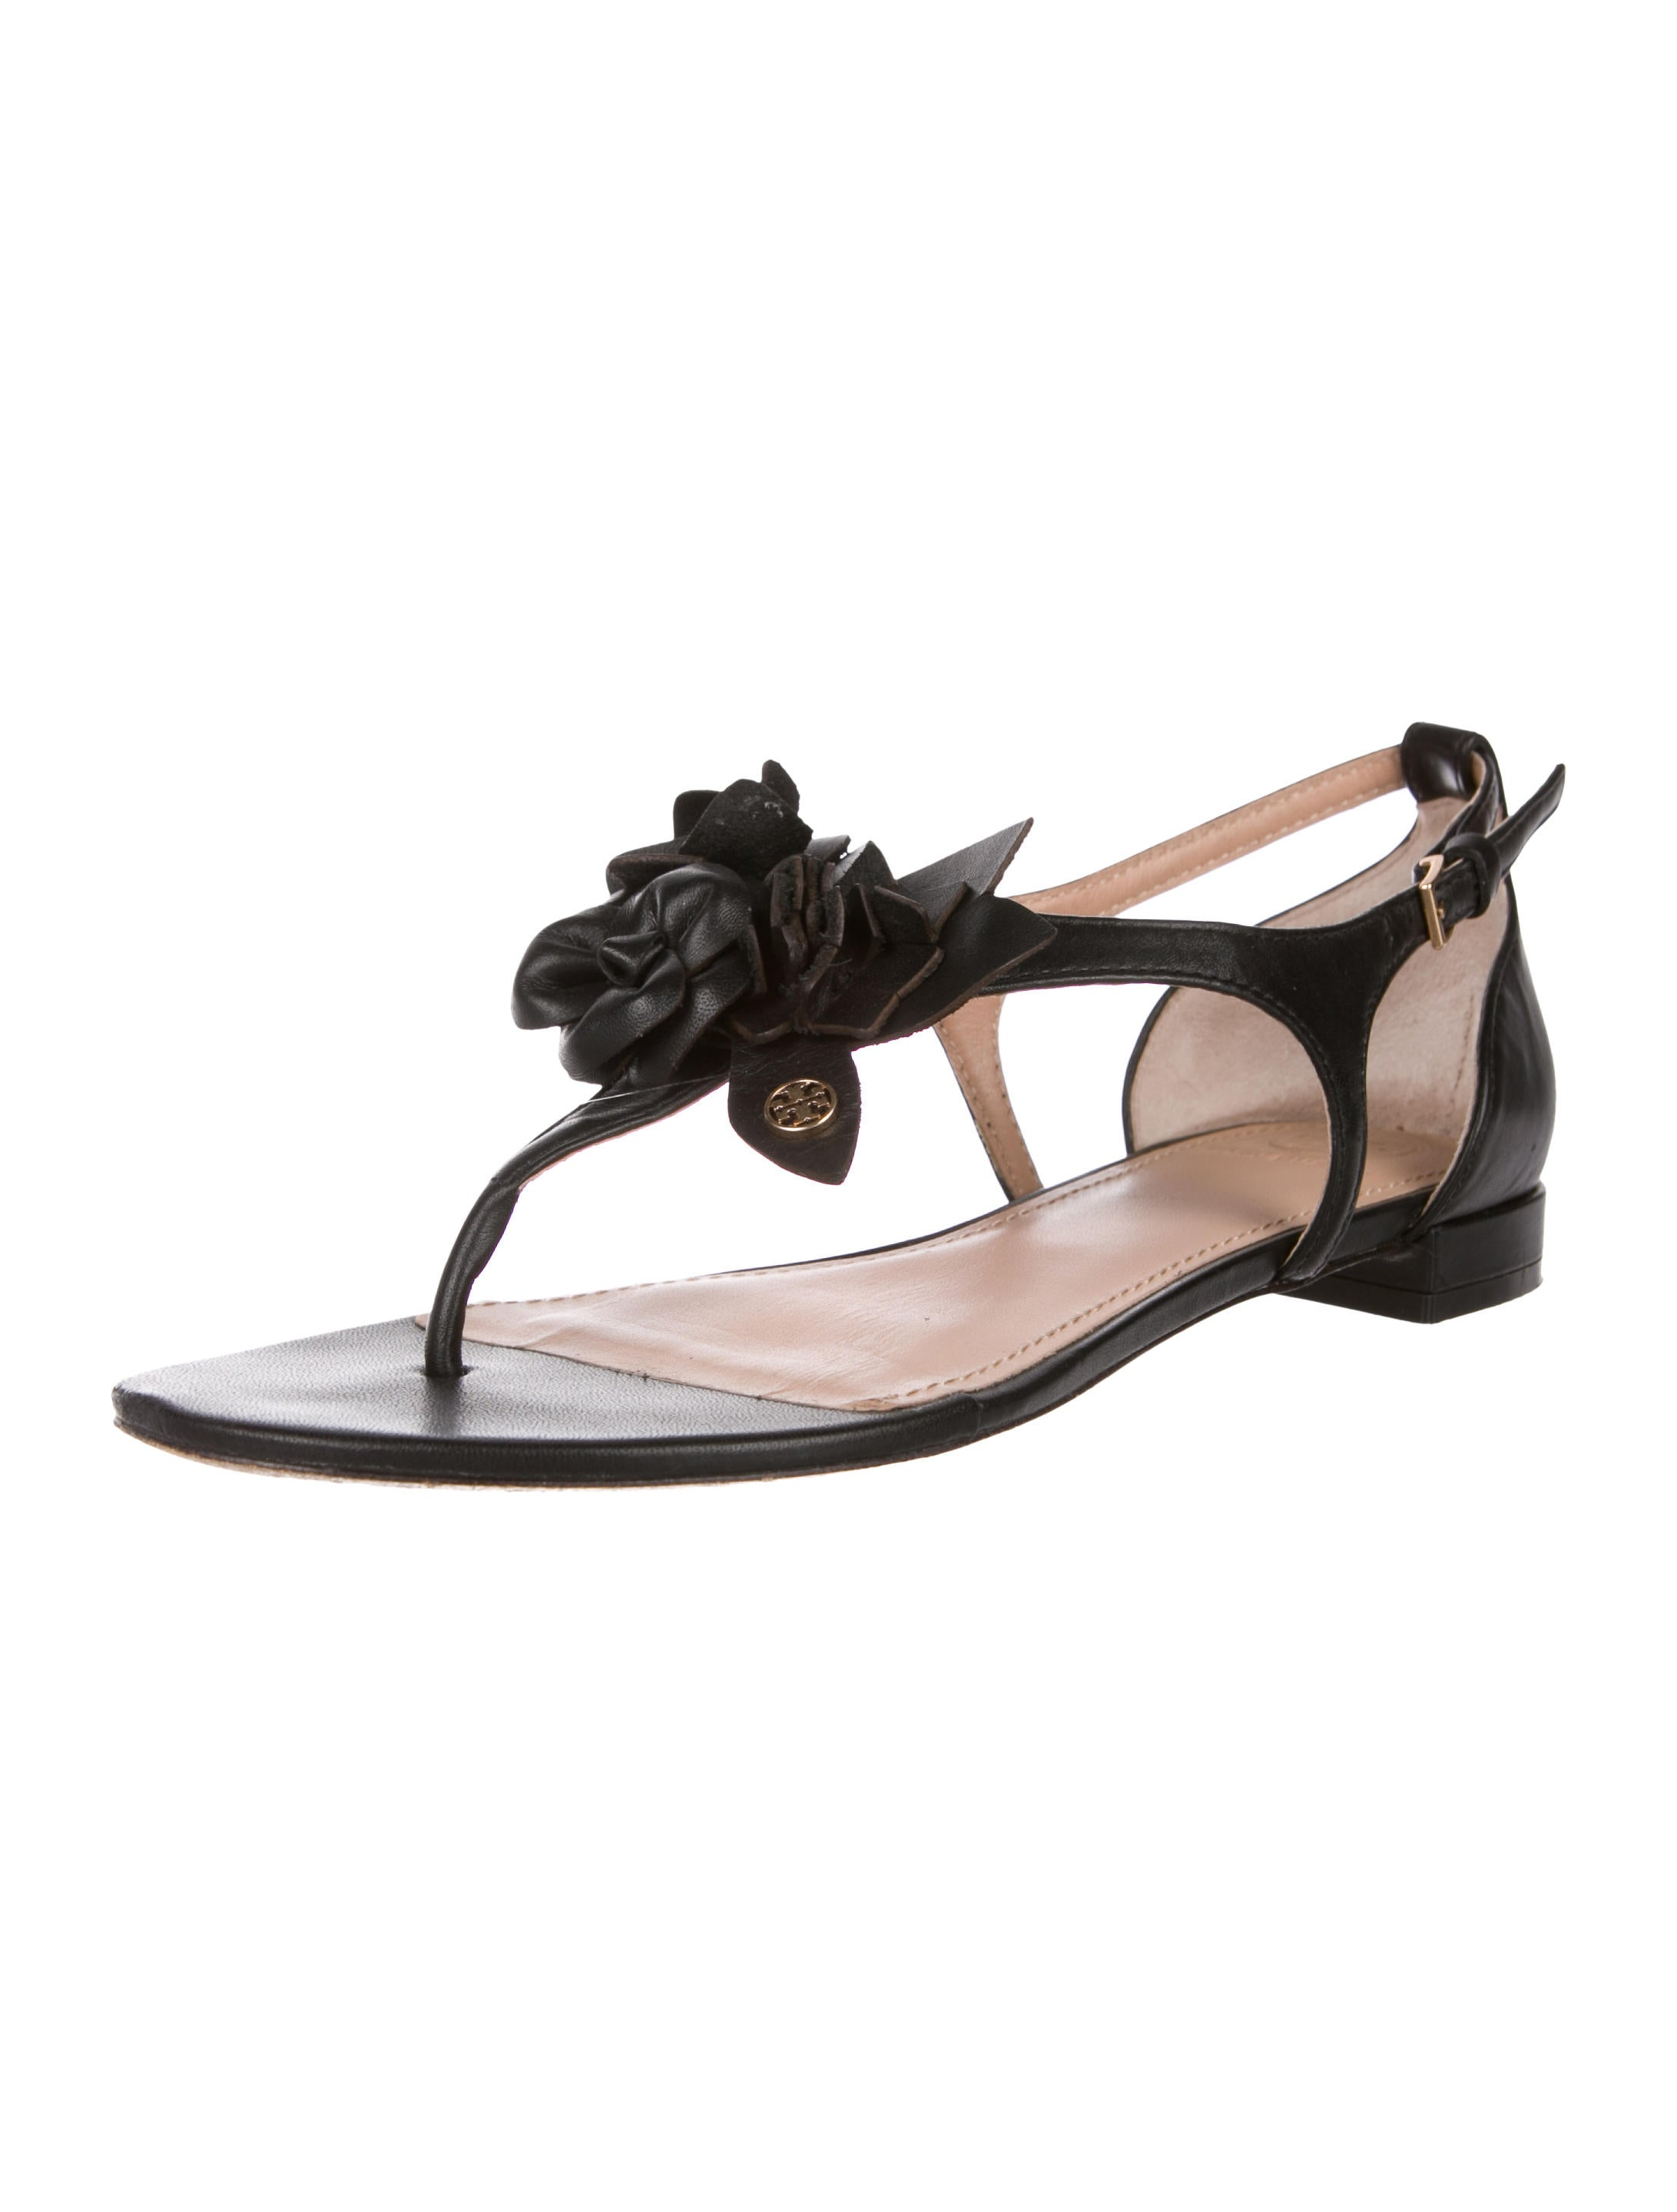 e8d018ac2a0d7f Tory Burch Blossom Thong Sandals - Shoes - WTO147774